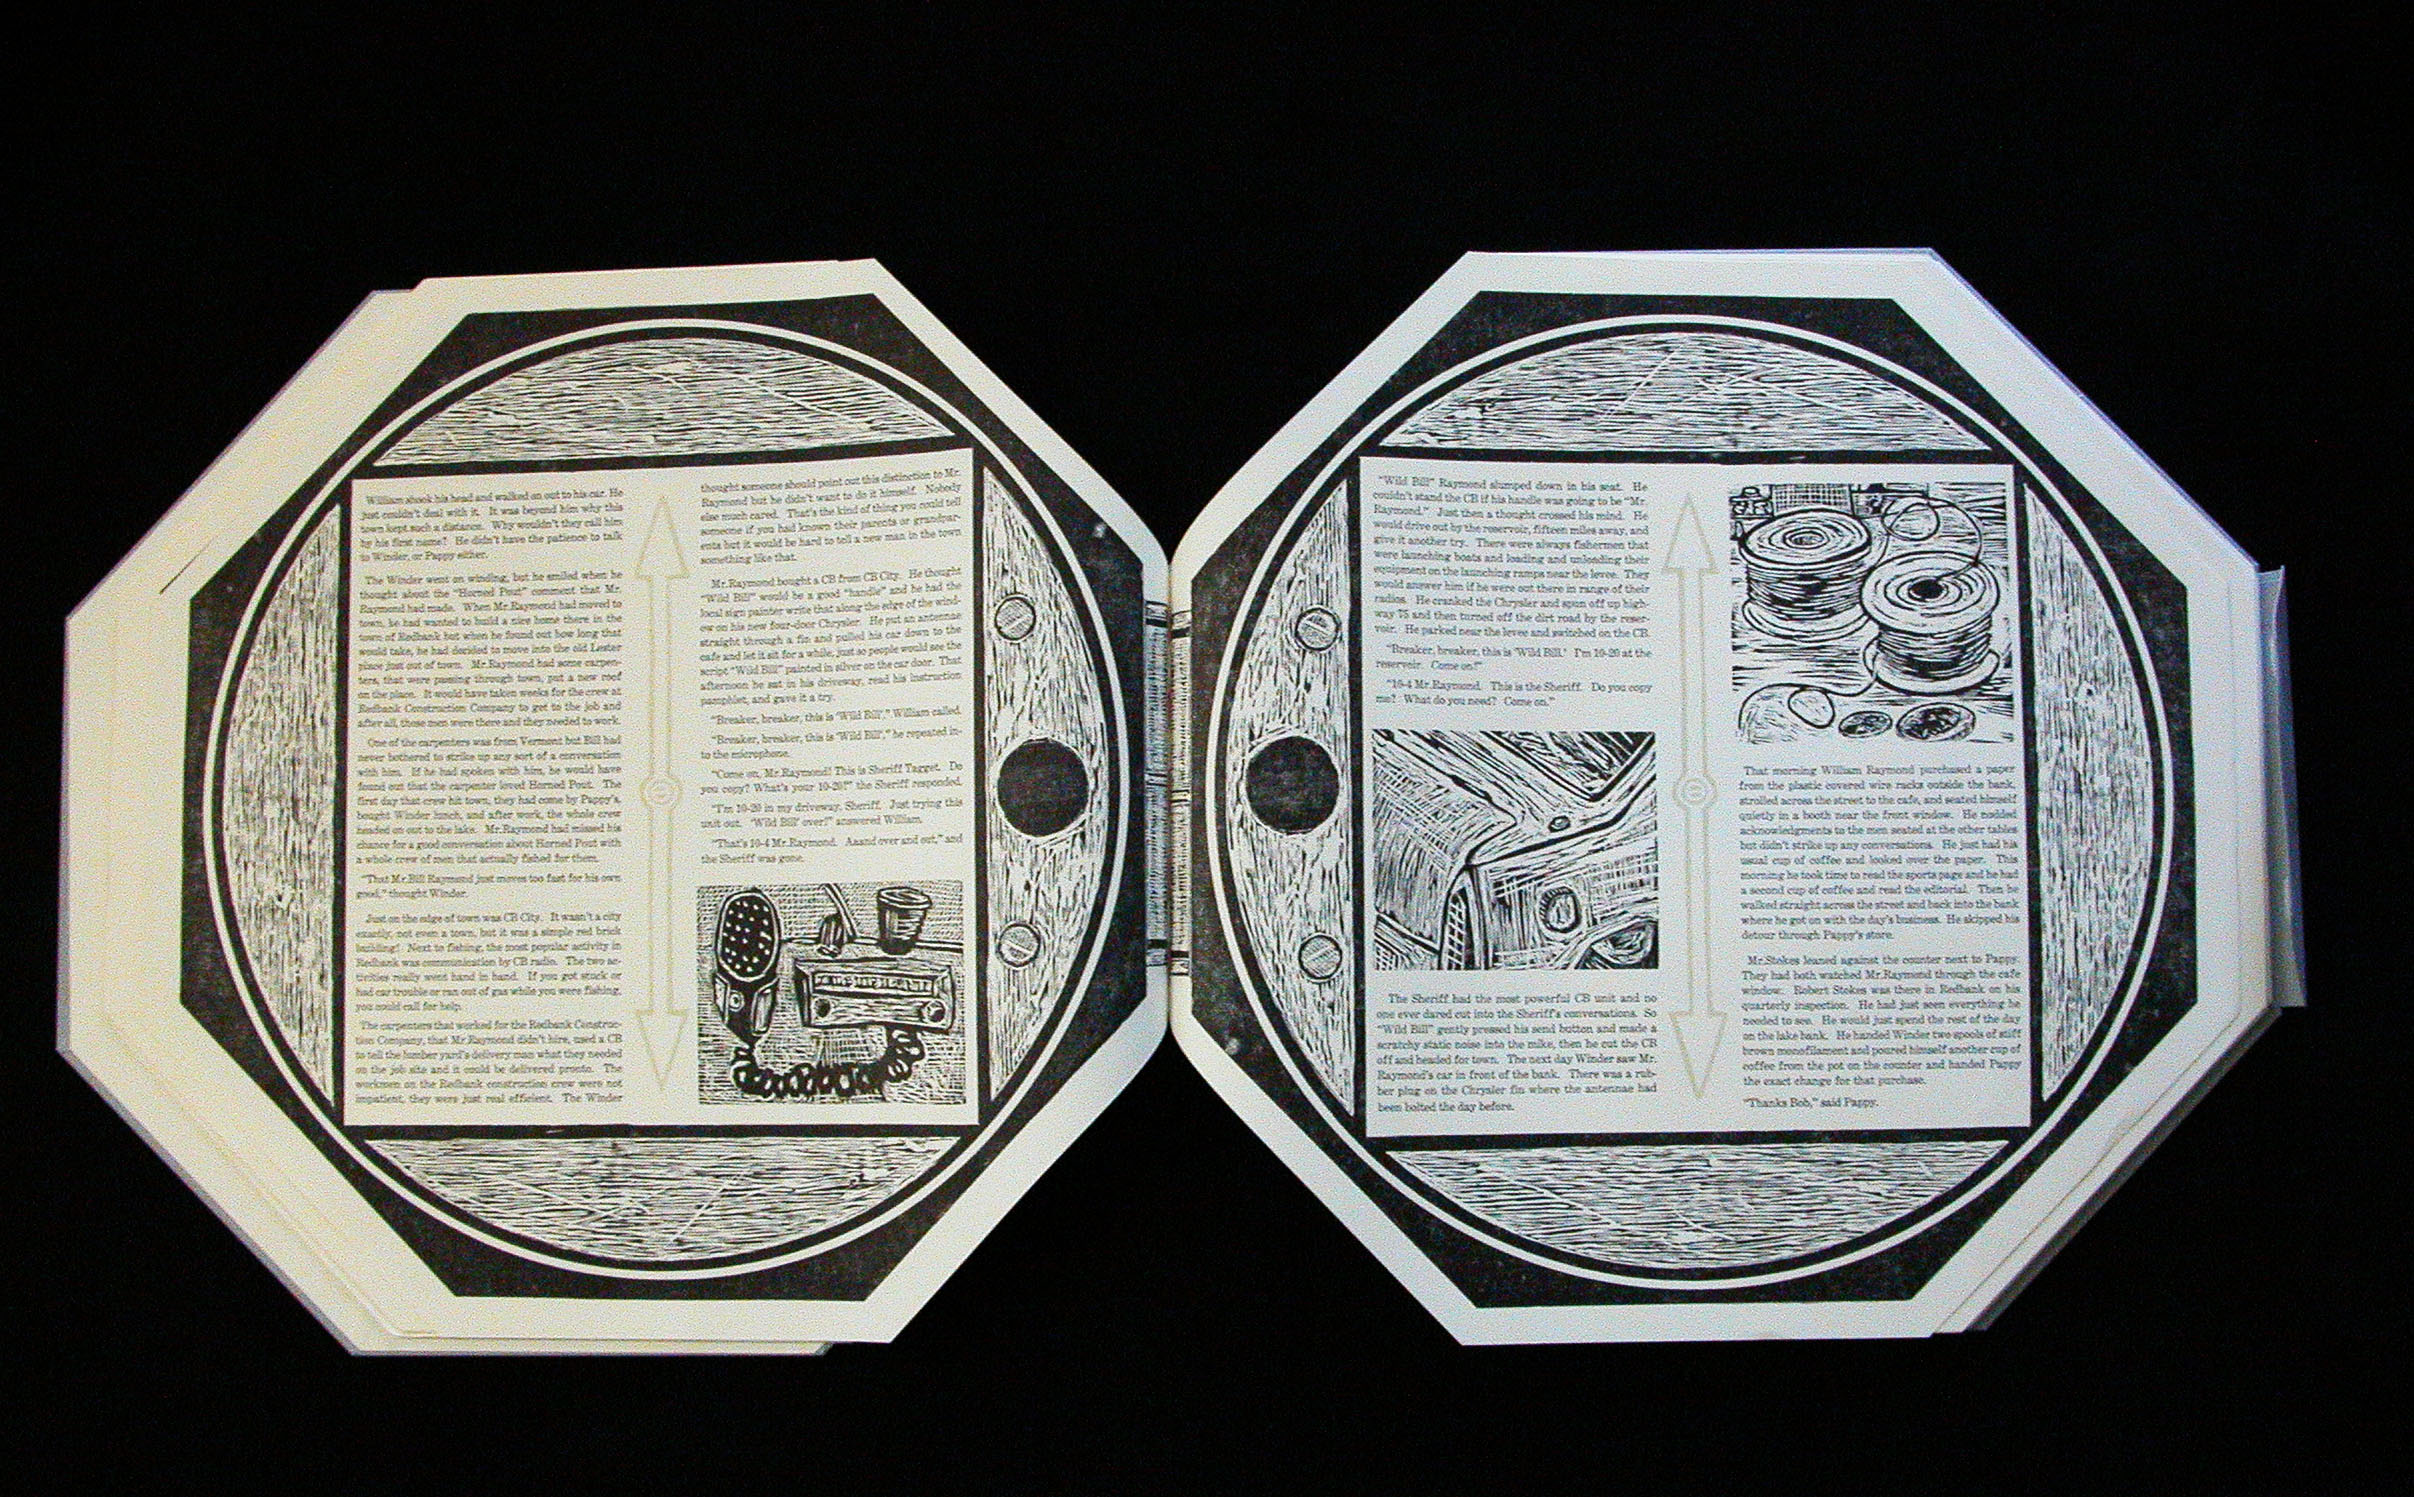 Octagonal shaped book with woodcuts and letter press printed story